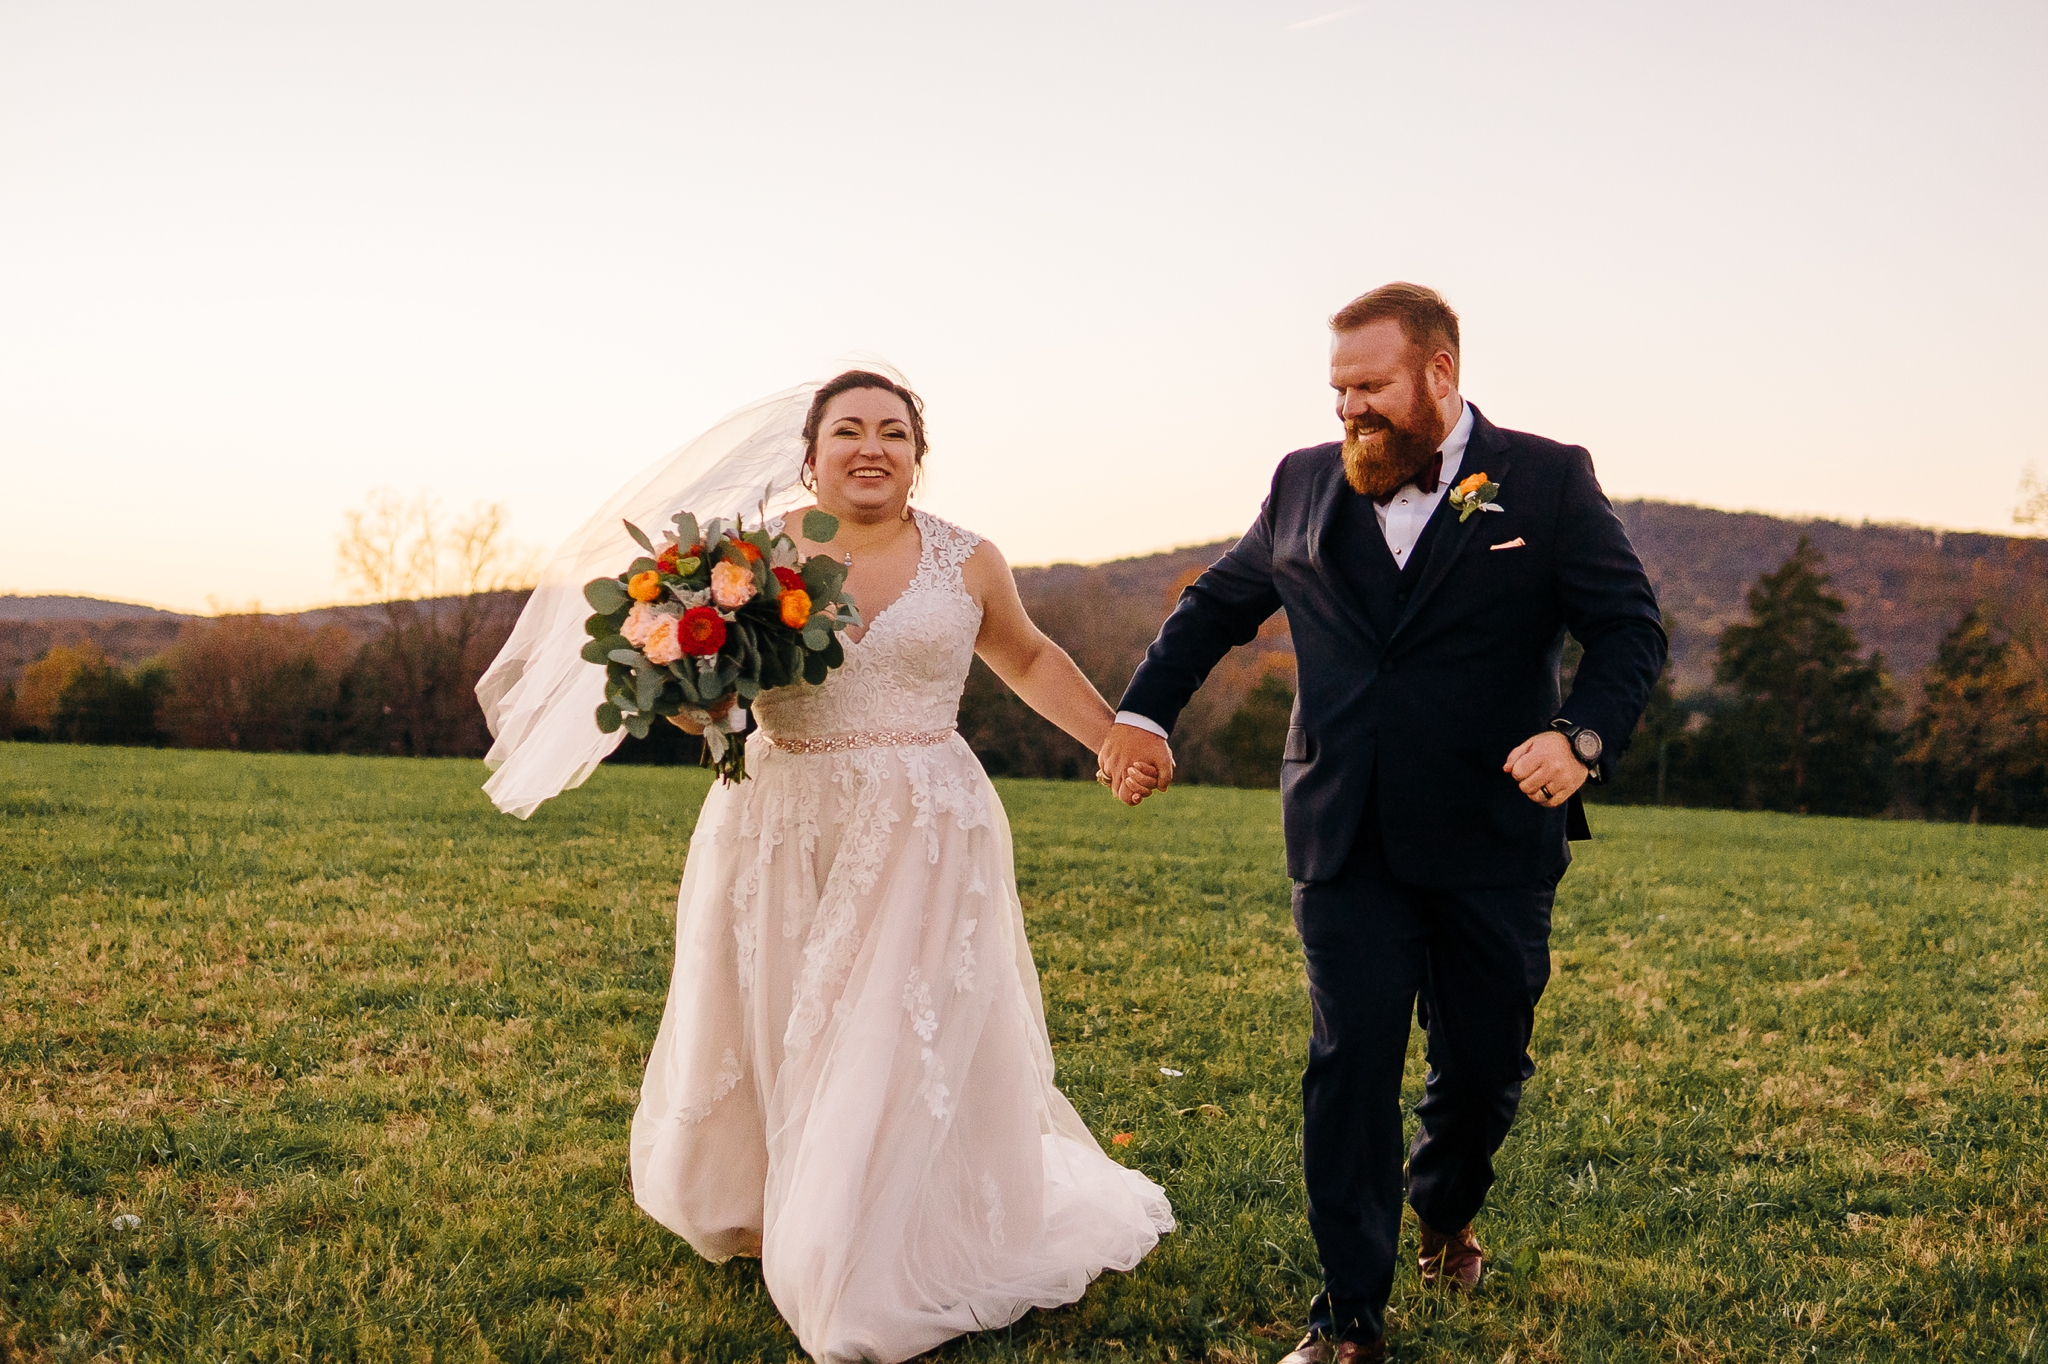 Bride_and_groom_portraits_running_in_field_at_wolftrap_farms_by_jonathan_and_hannah_photography